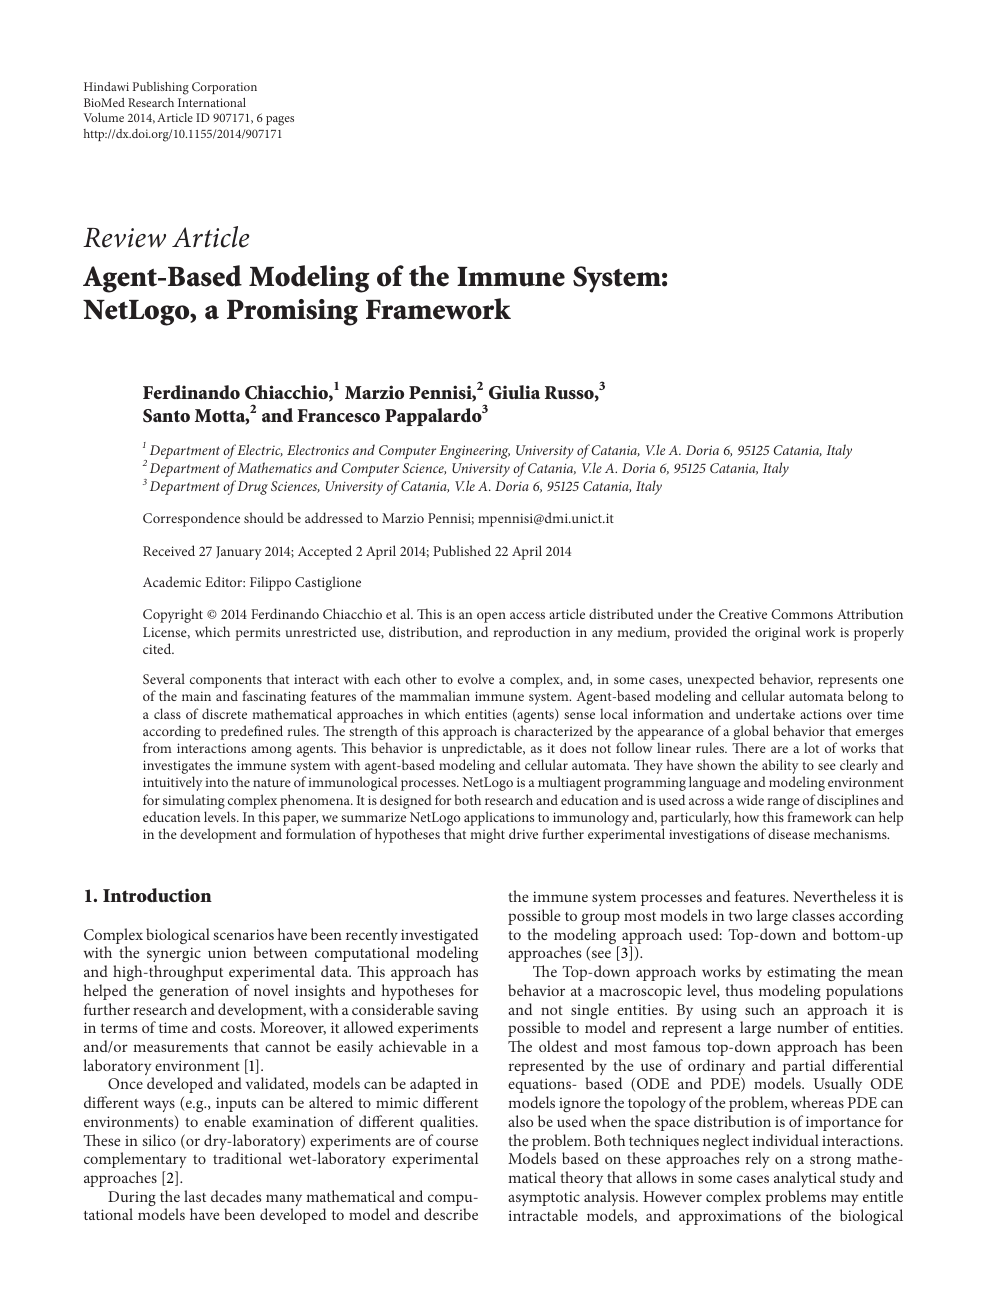 Agent Based Modeling Of The Immune System Netlogo A Promising Framework Topic Of Research Paper In Medical Engineering Download Scholarly Article Pdf And Read For Free On Cyberleninka Open Science Hub